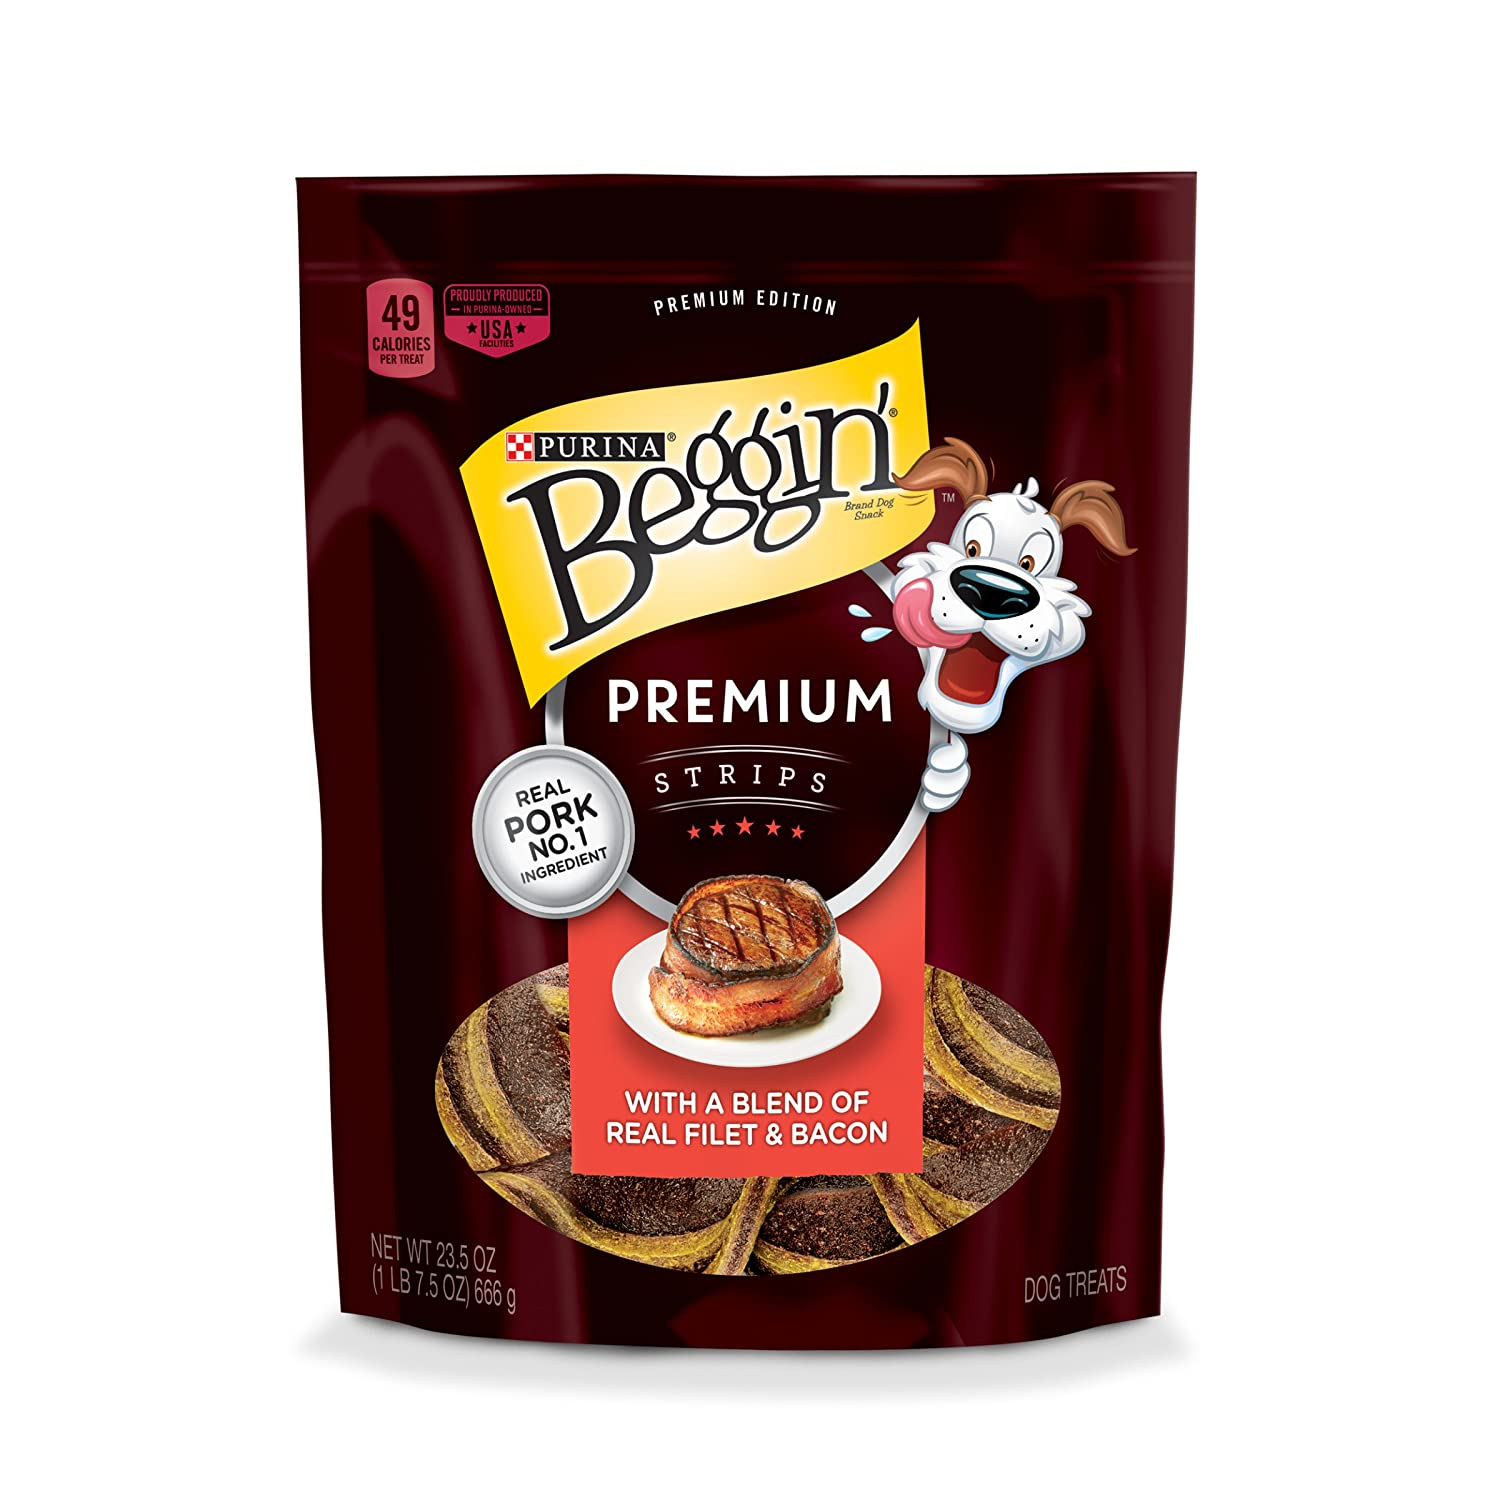 23.5 oz. Pouch Purina Beggin' Premium Strips Real Pork Dog Treats 23.5 oz. Pouch